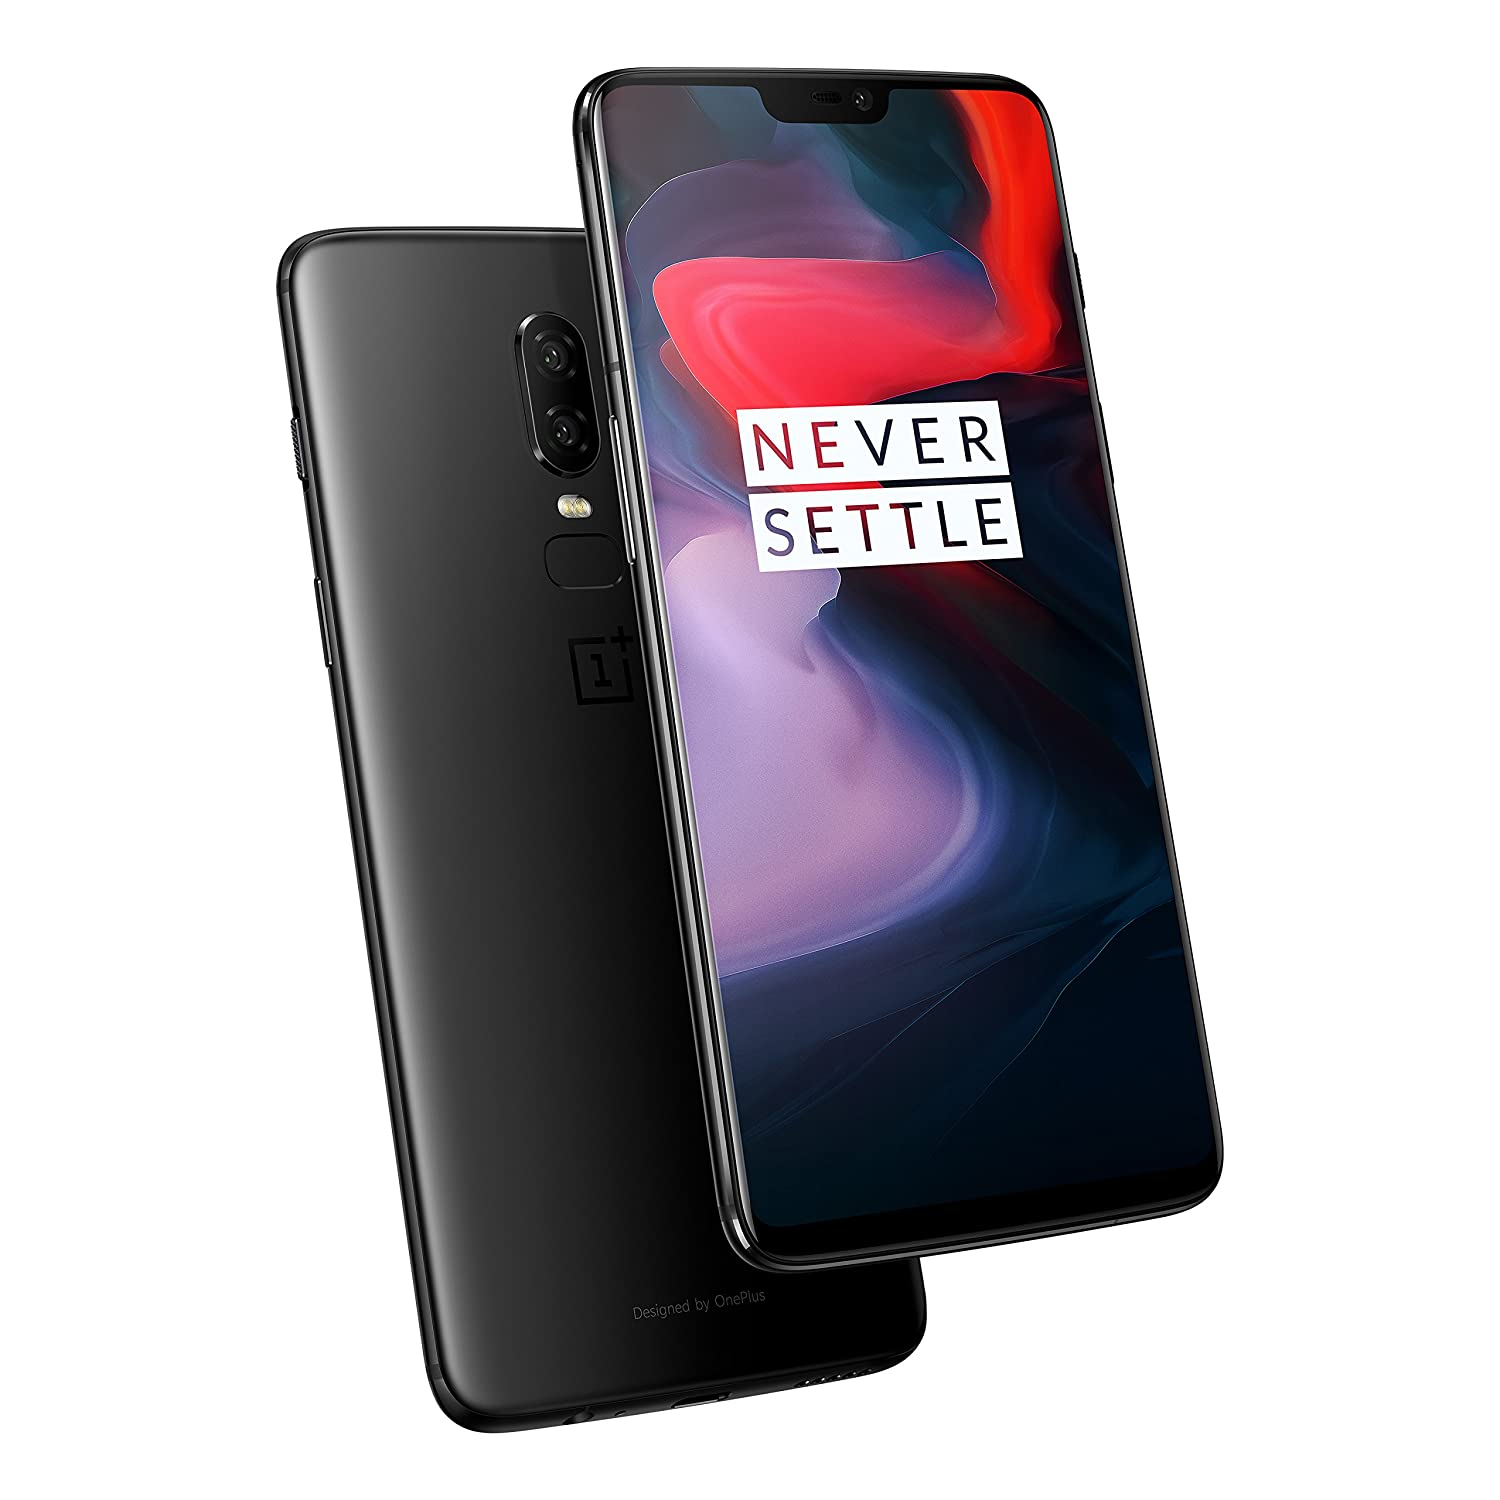 OnePlus 6 Smartphone, A6003, 128GB, Midnight Black